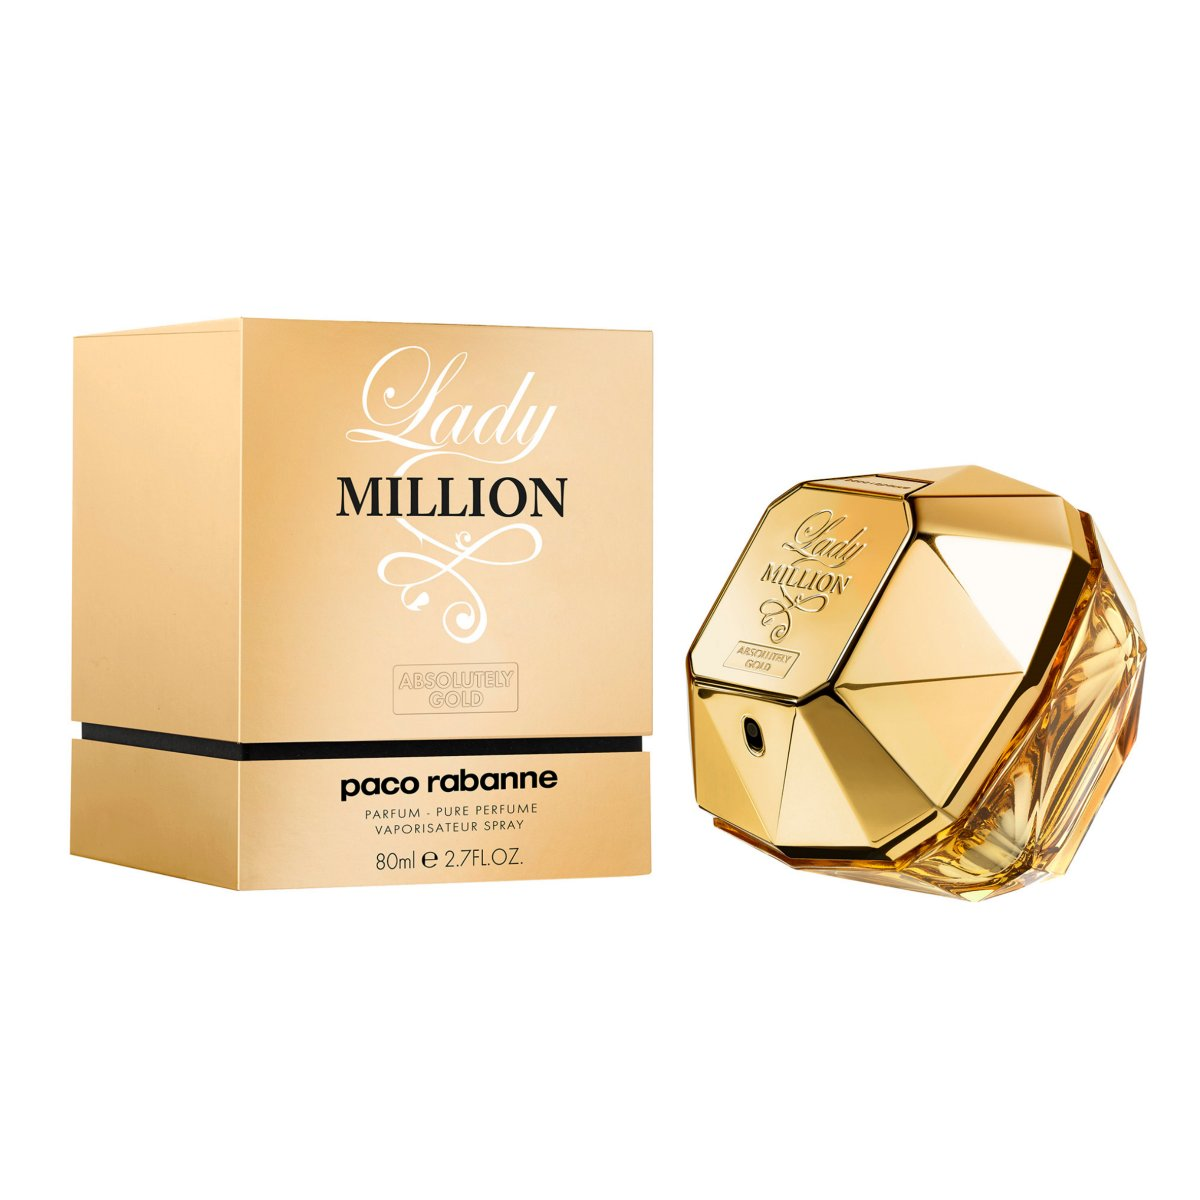 paco rabanne lady million absolutely gold eau de parfum 80ml. Black Bedroom Furniture Sets. Home Design Ideas